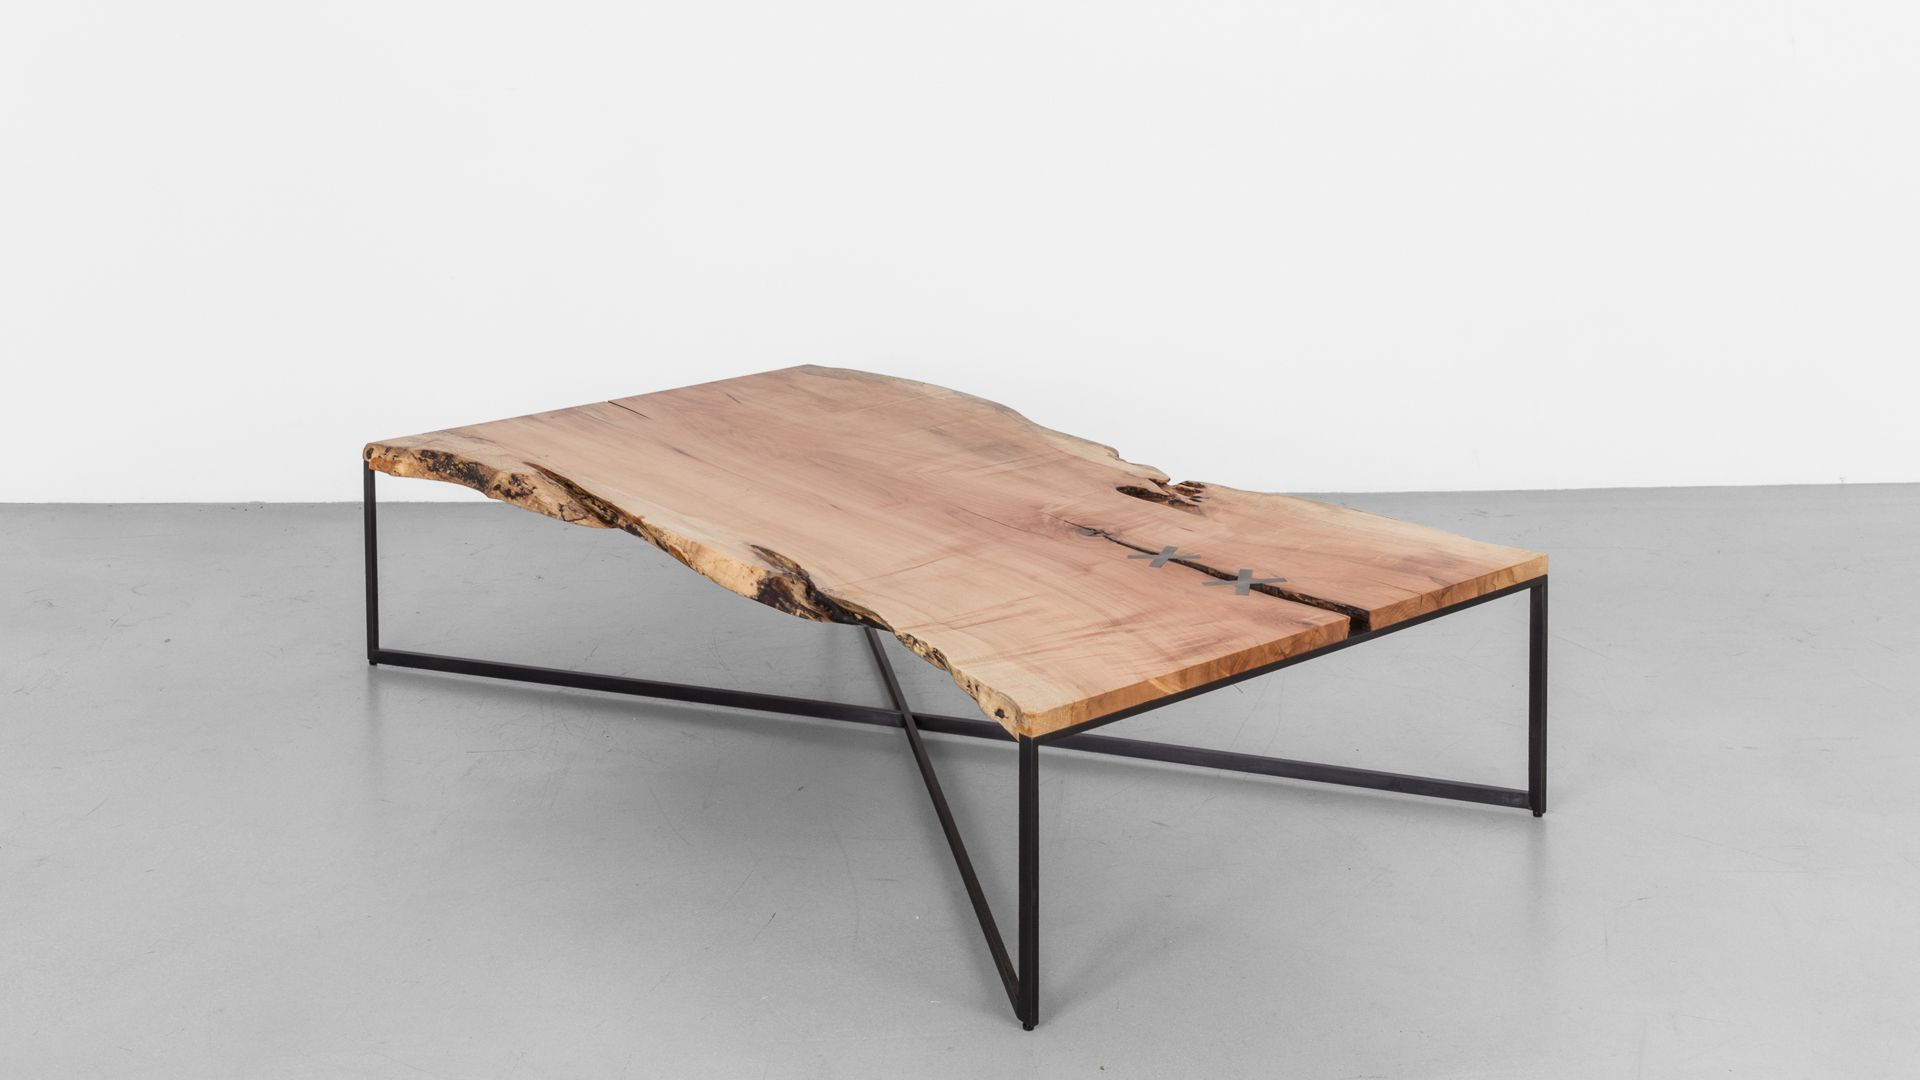 Stitch Coffee Table Coffee Table Welding Table Welding Table Diy [ 1080 x 1920 Pixel ]